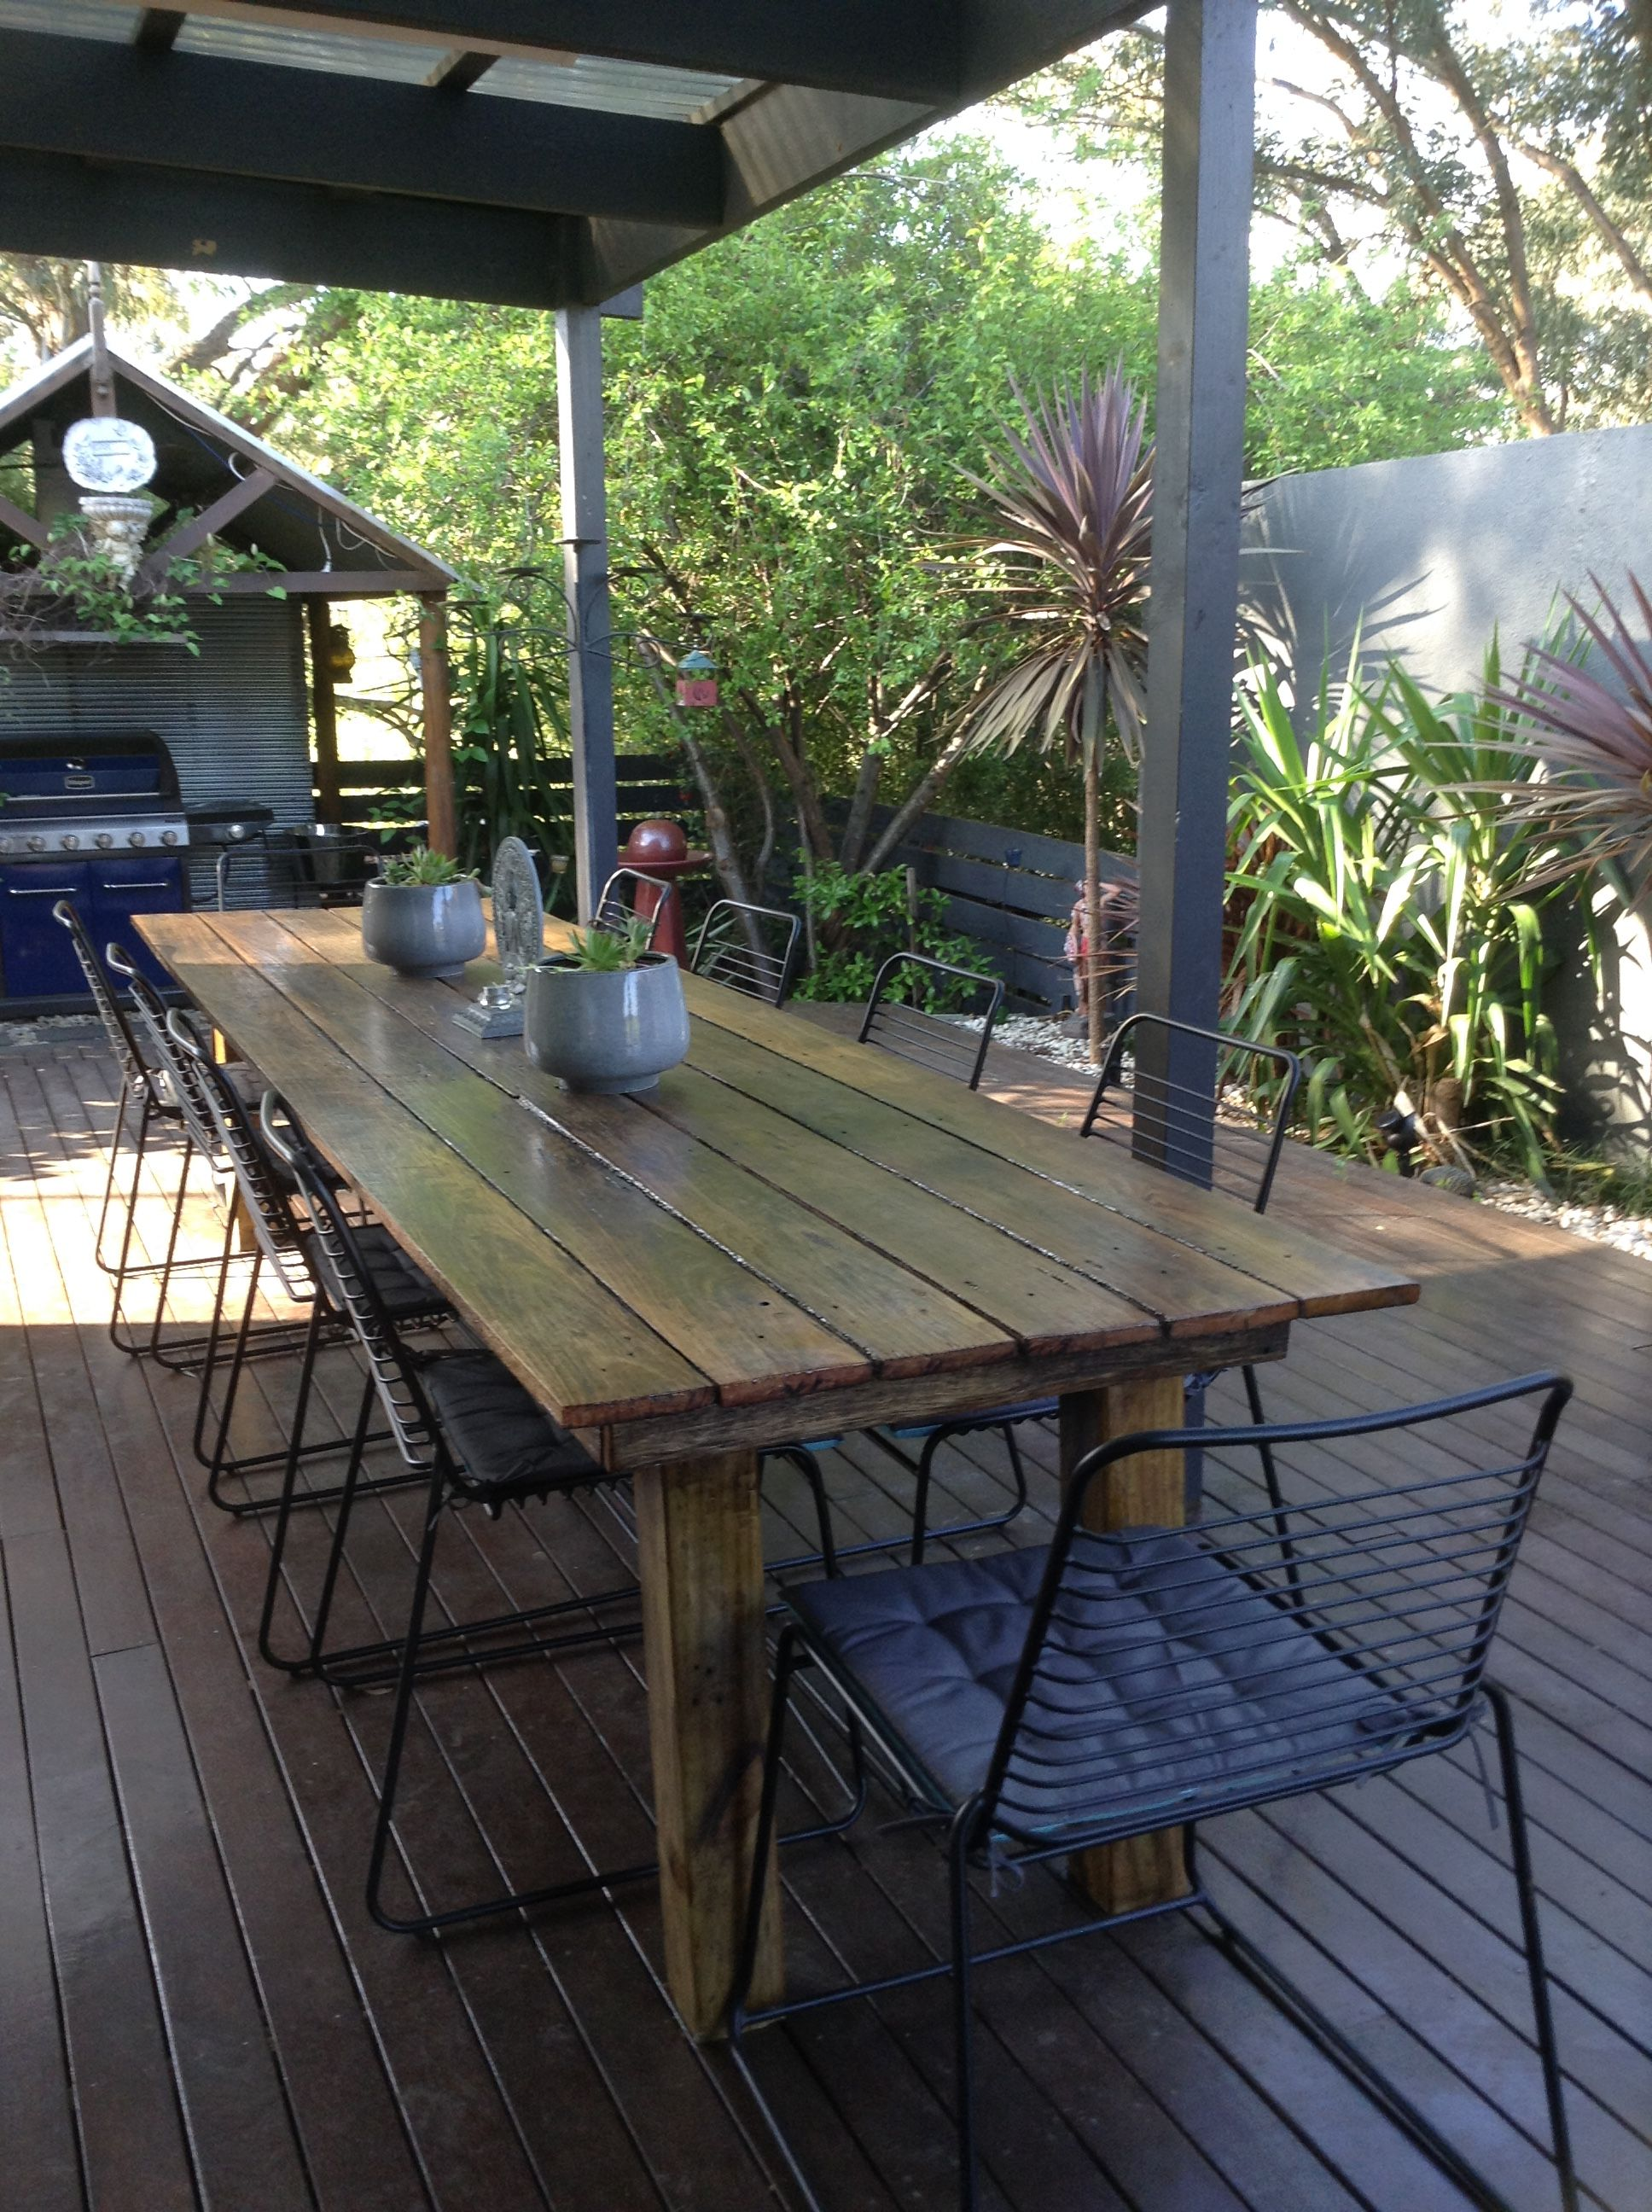 Homemade Outdoor Dining Table Chairs And Cushions From Kmart Outdoor Patio Table Backyard Dining Table Backyard Dining